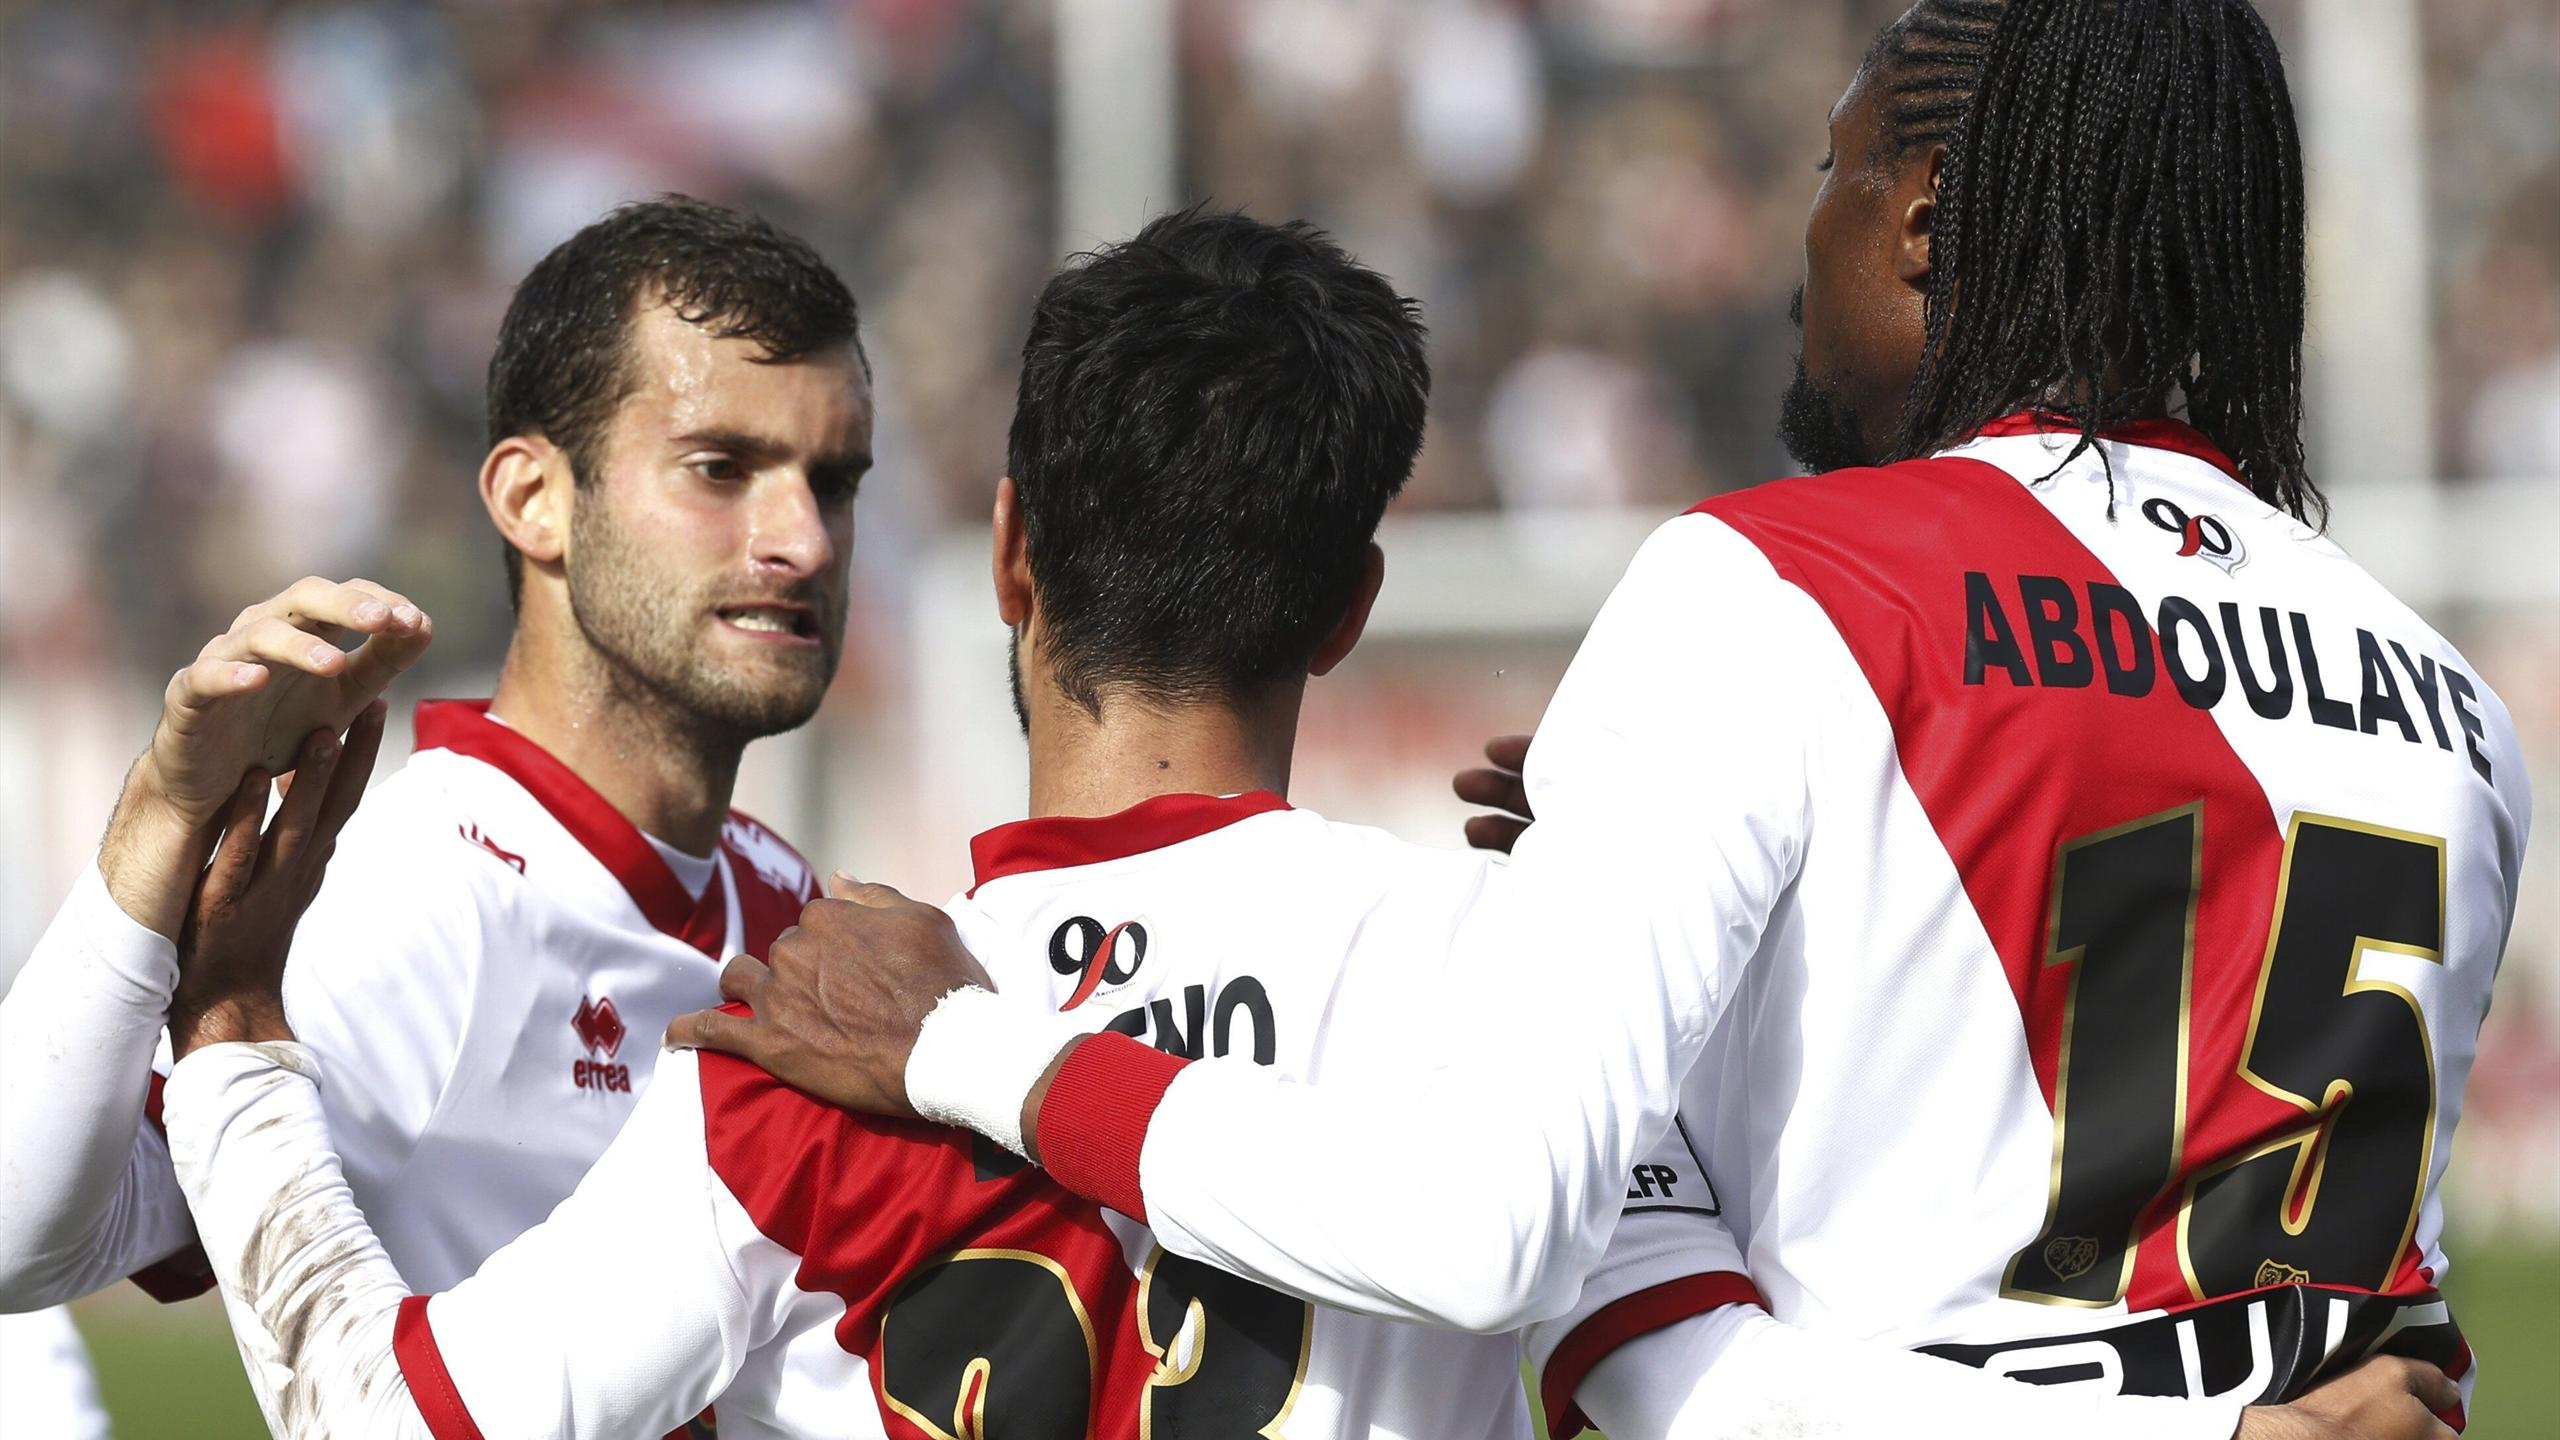 Video: Rayo Vallecano vs Celta de Vigo